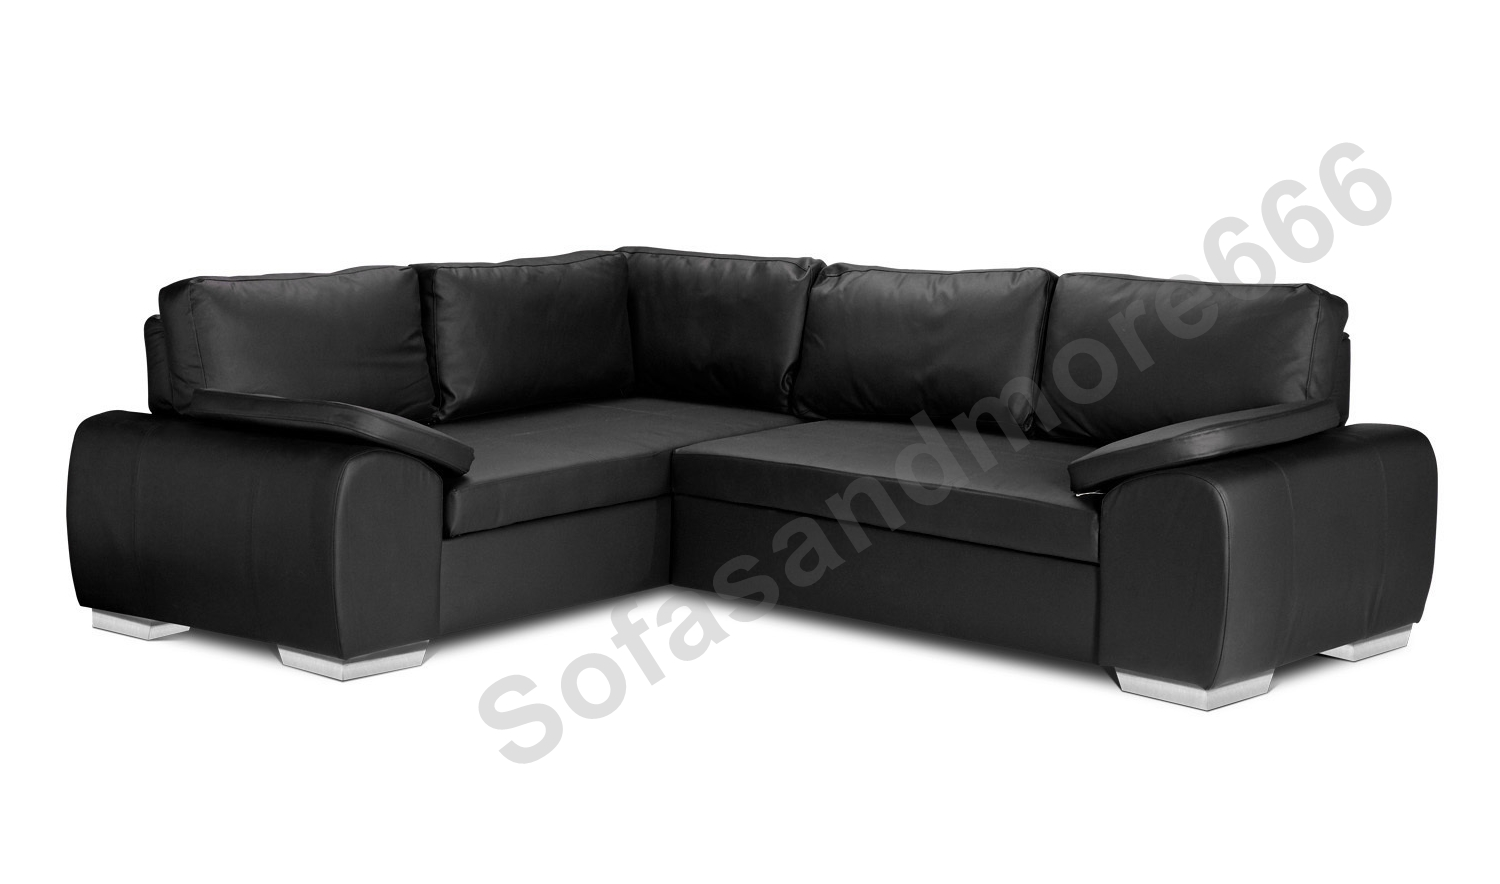 Big Sofa Leder Rund Hukla Polstermbel Leder Perfect Great Himolla Sessel